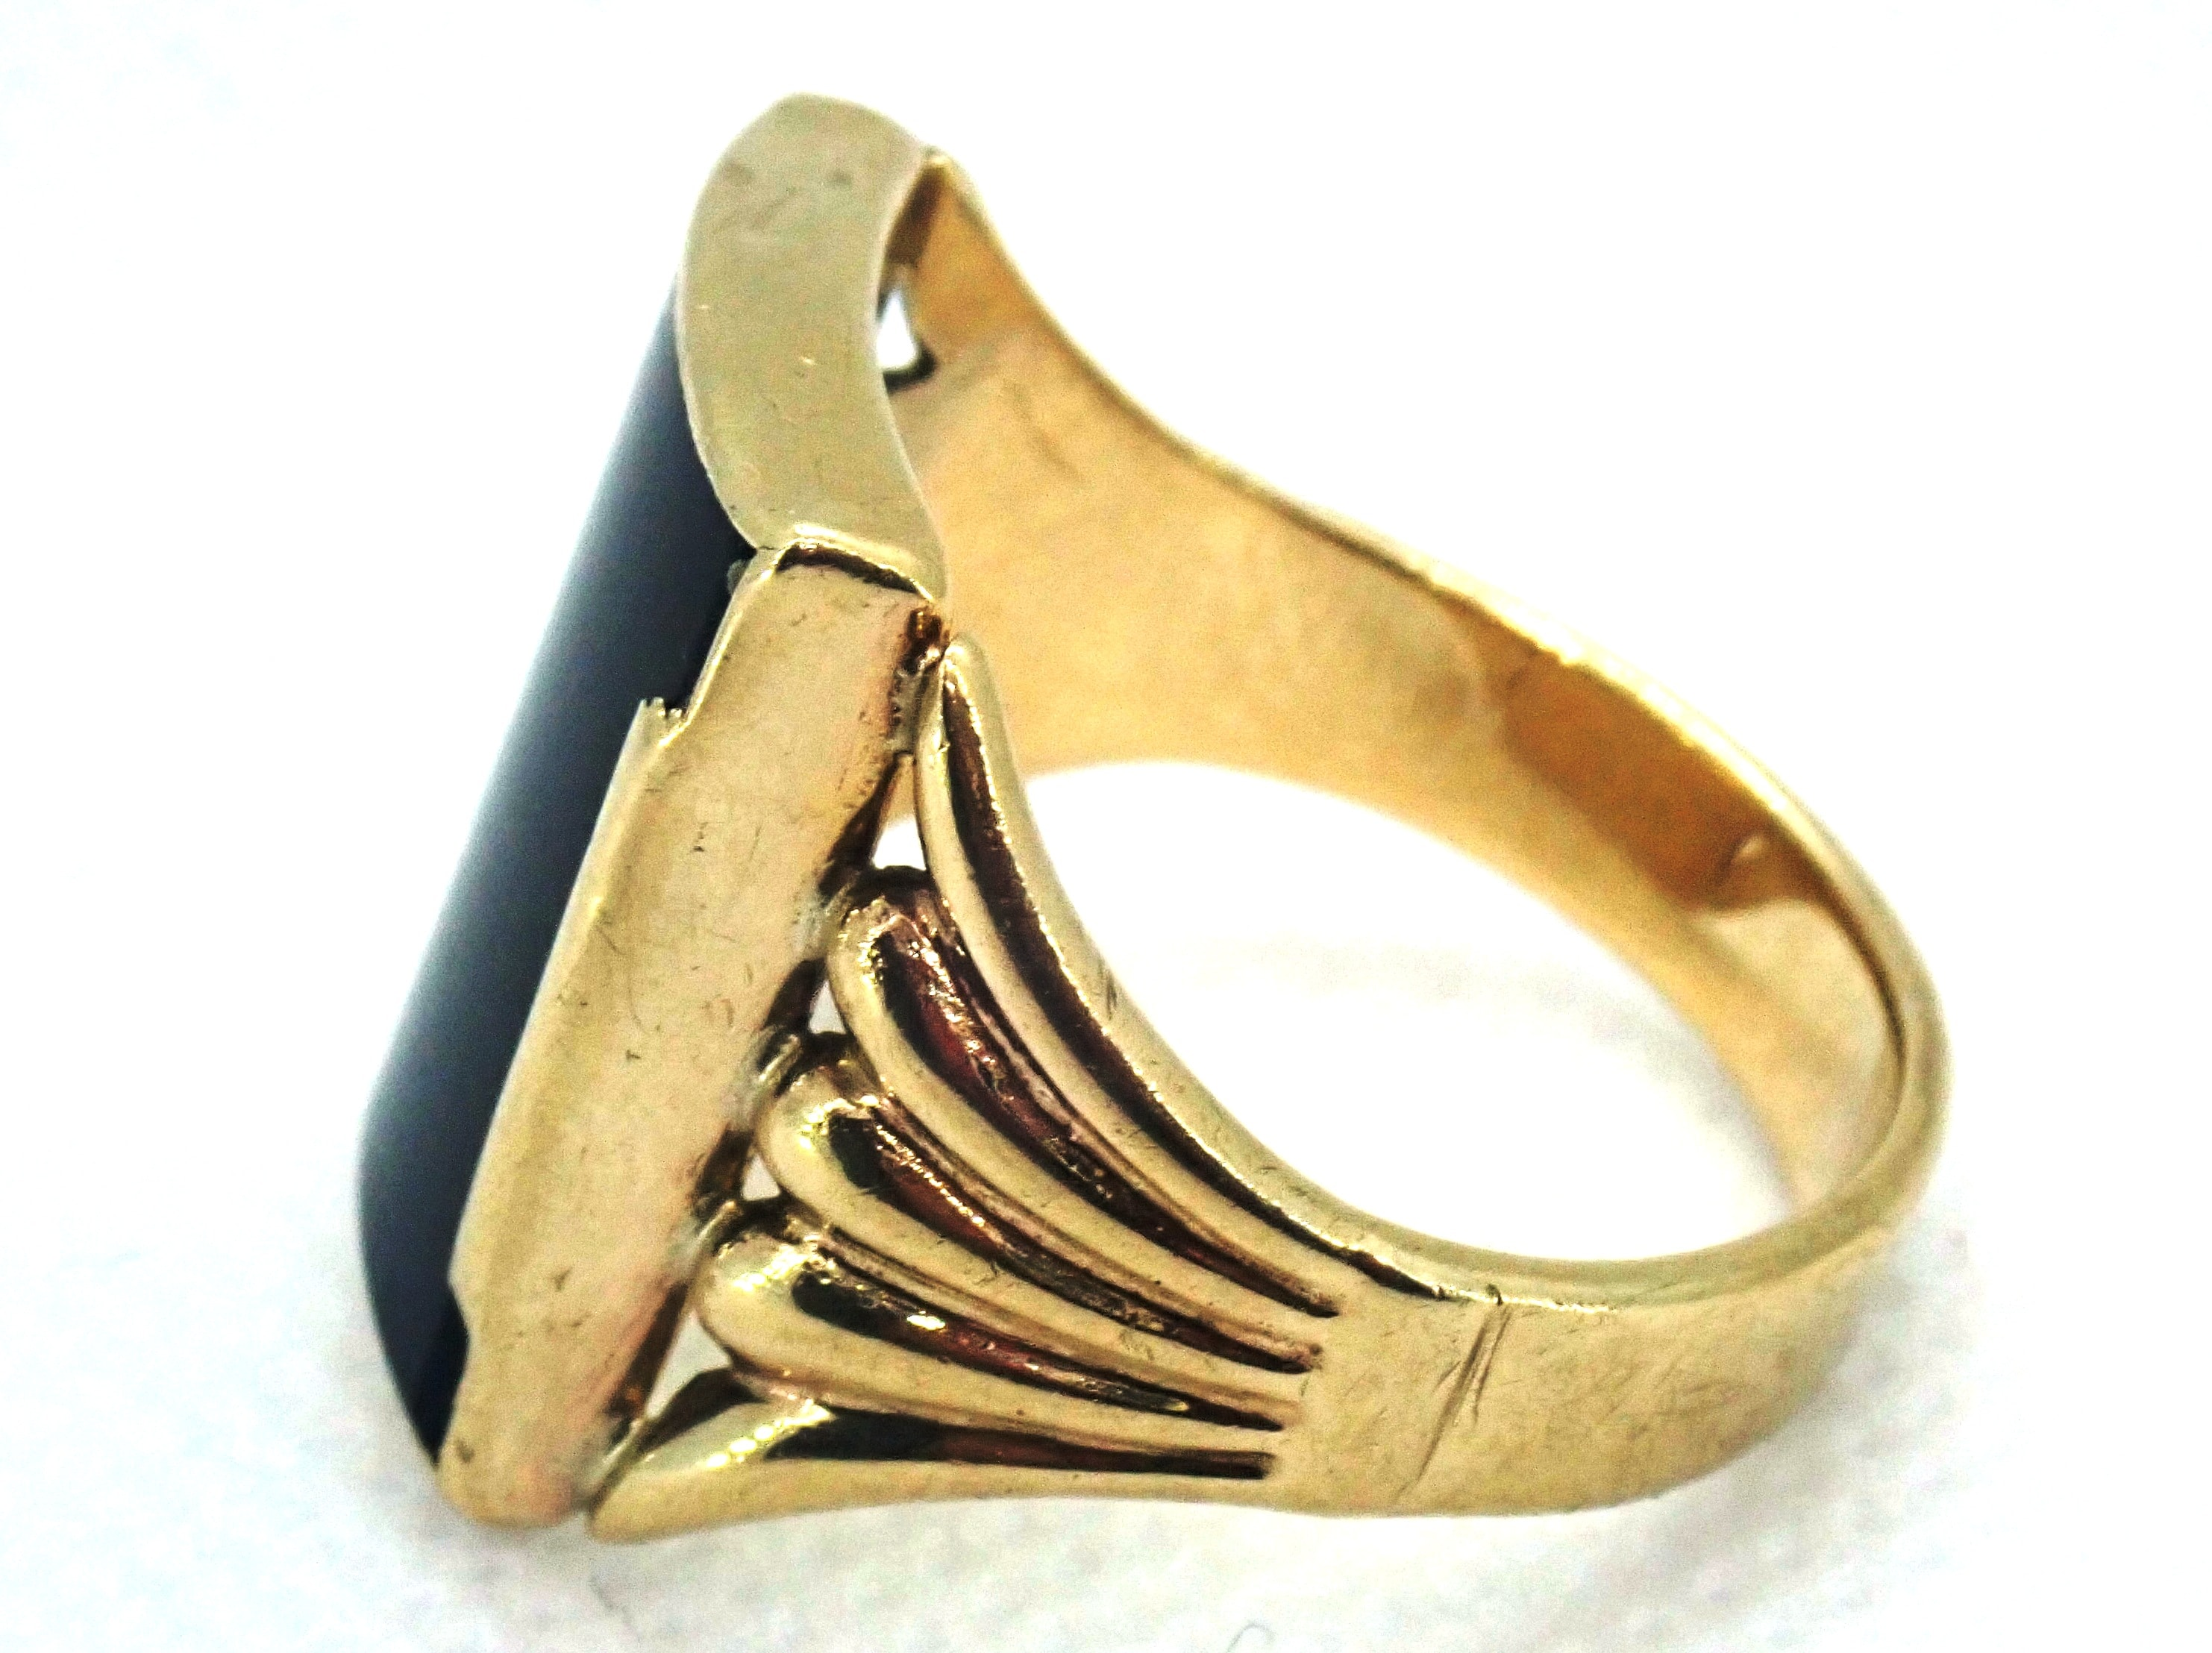 AZZ00694 - Beautiful!! Vintage Square Onyx 9 carat Gold Signet Ring - Size S1/2 - 5.5gms #011